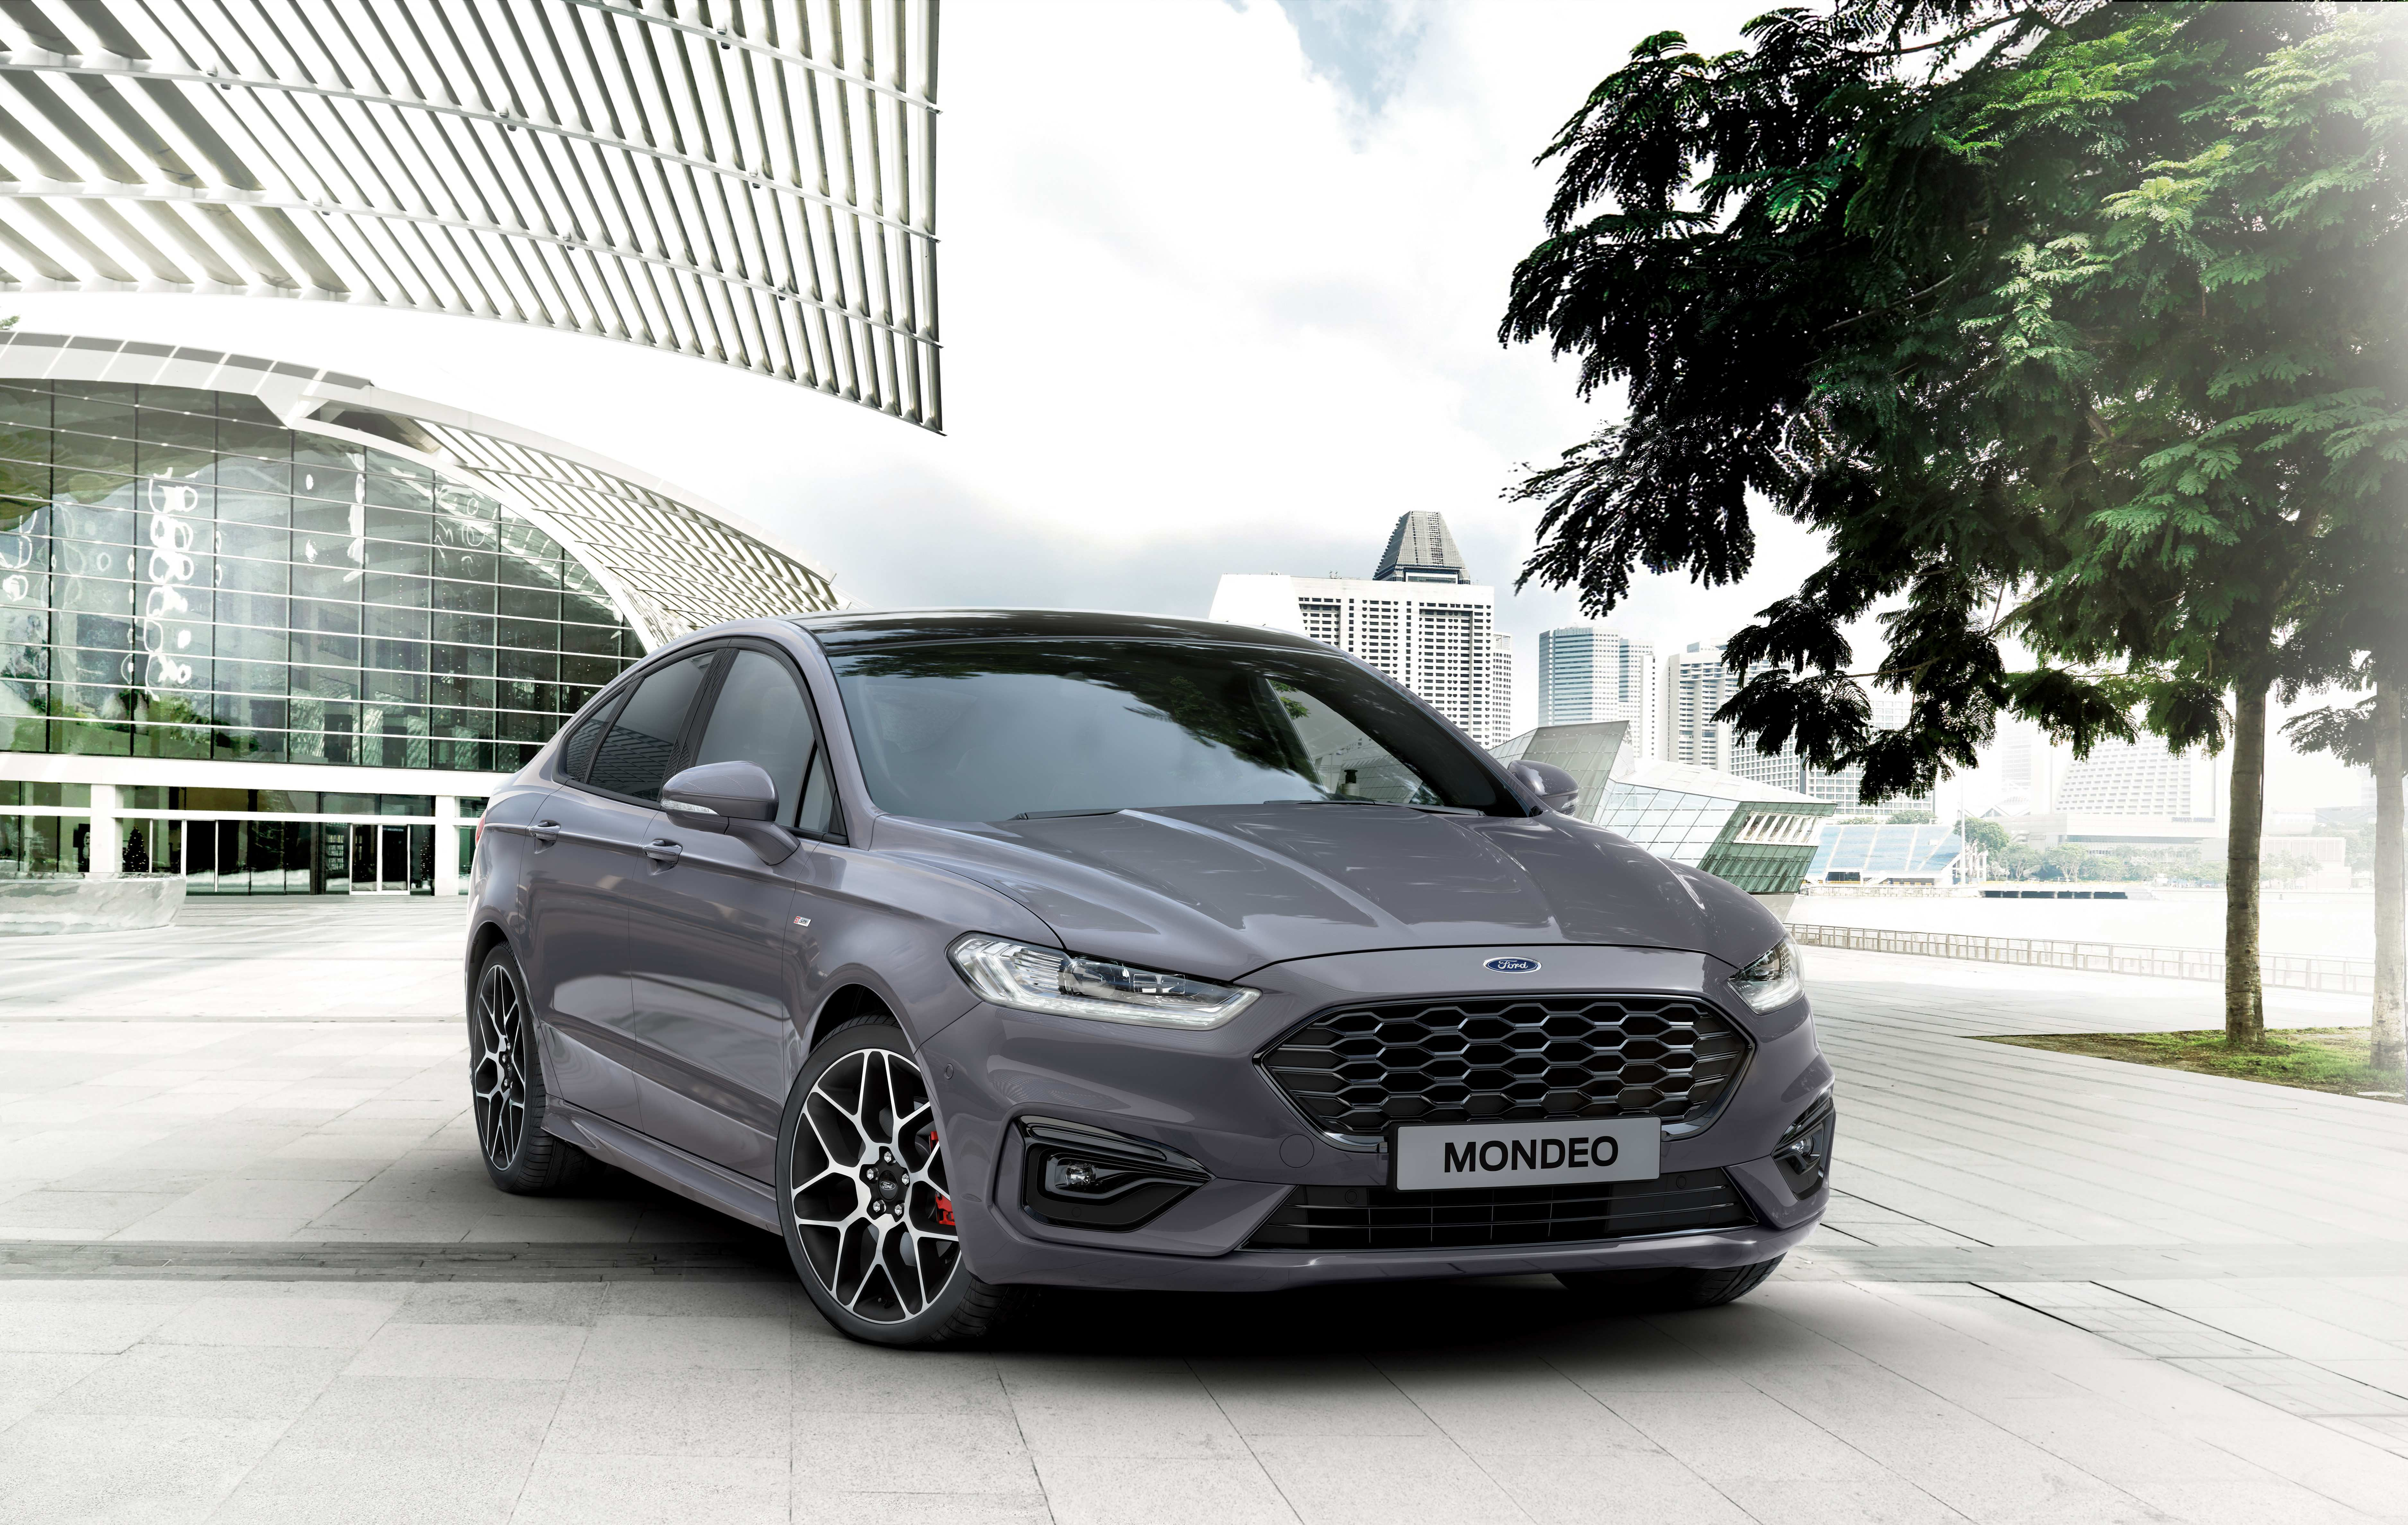 42 A 2020 Ford Mondeo Vignale Exterior And Interior